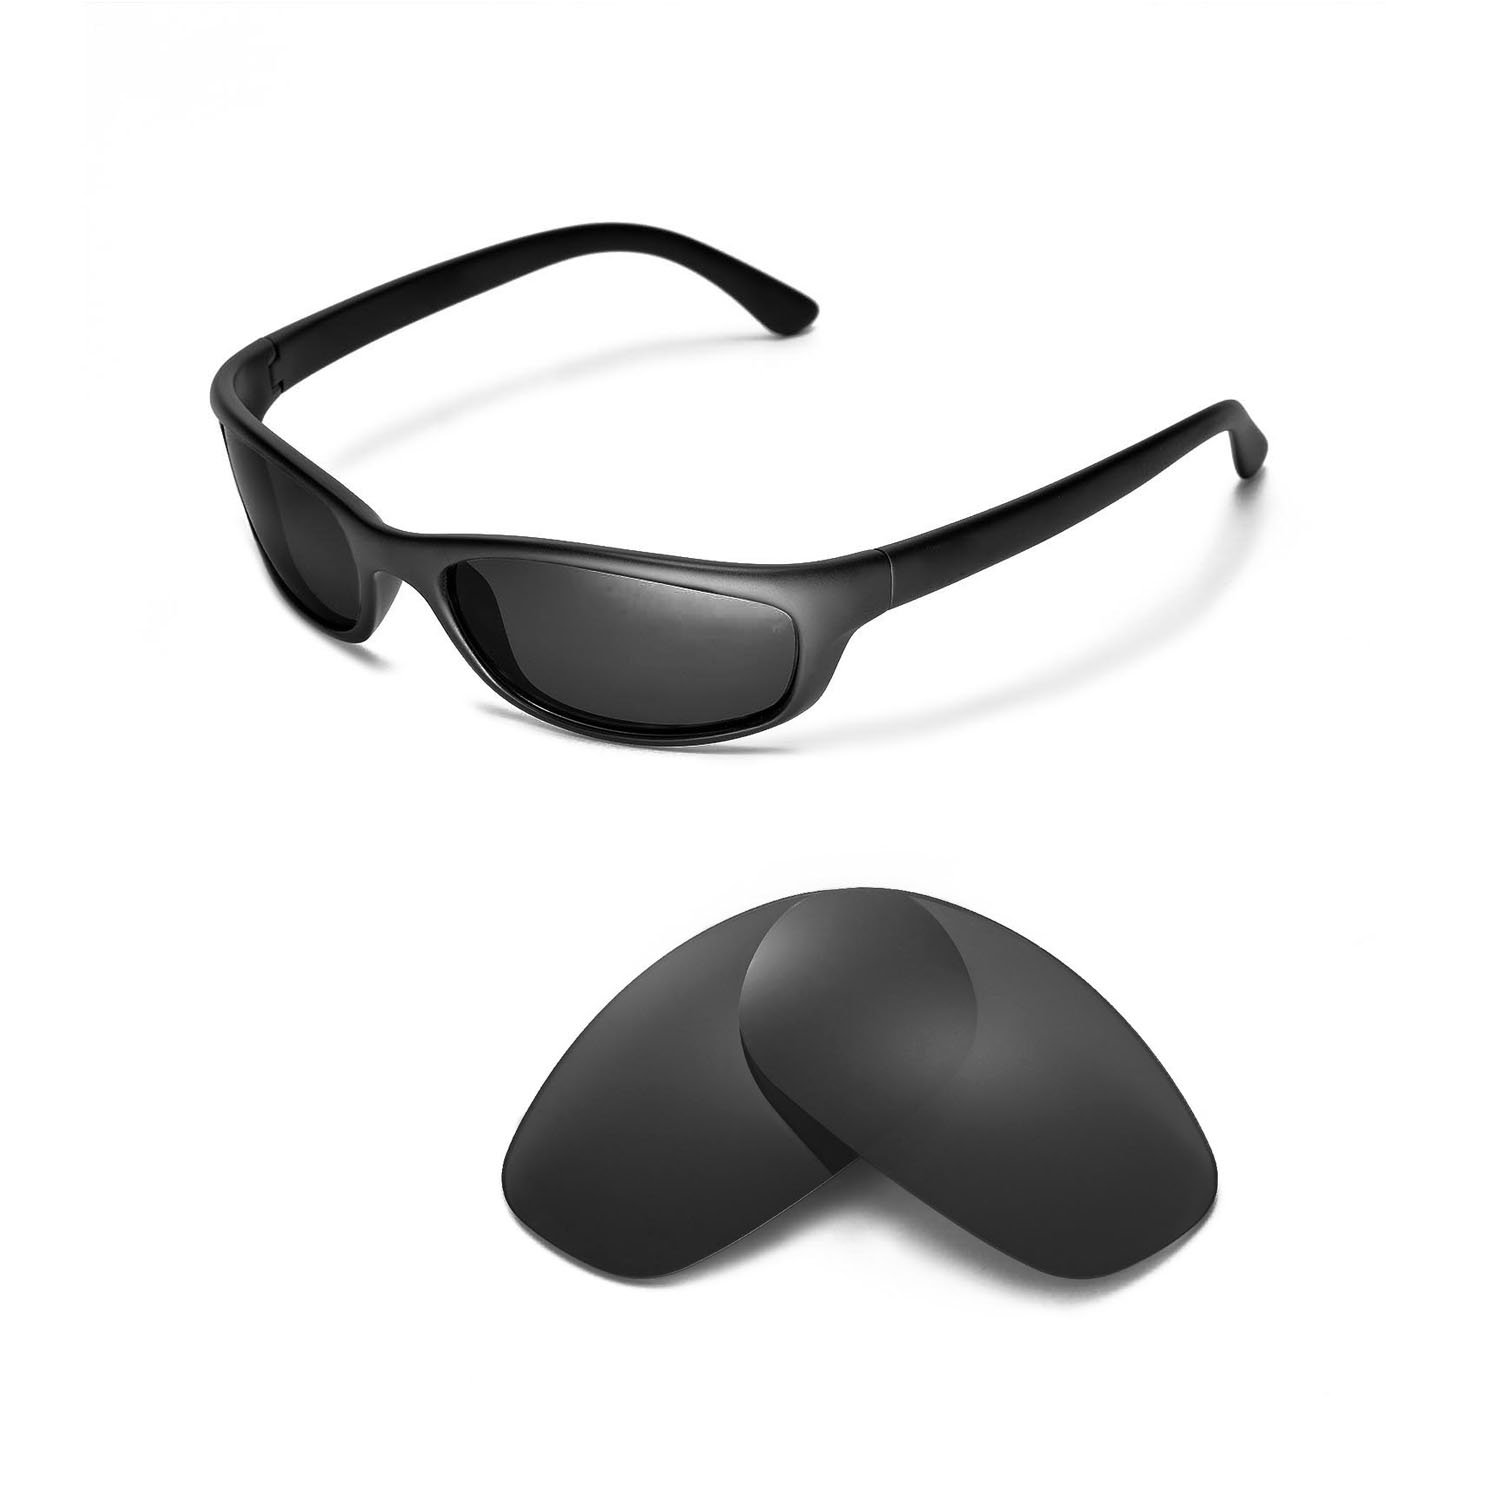 cf4446ec38 Amazon.com   Walleva Replacement Lenses for Ray-Ban RB4115 Sunglasses -  Multiple Options Available (Black - Polarized)   Sports   Outdoors